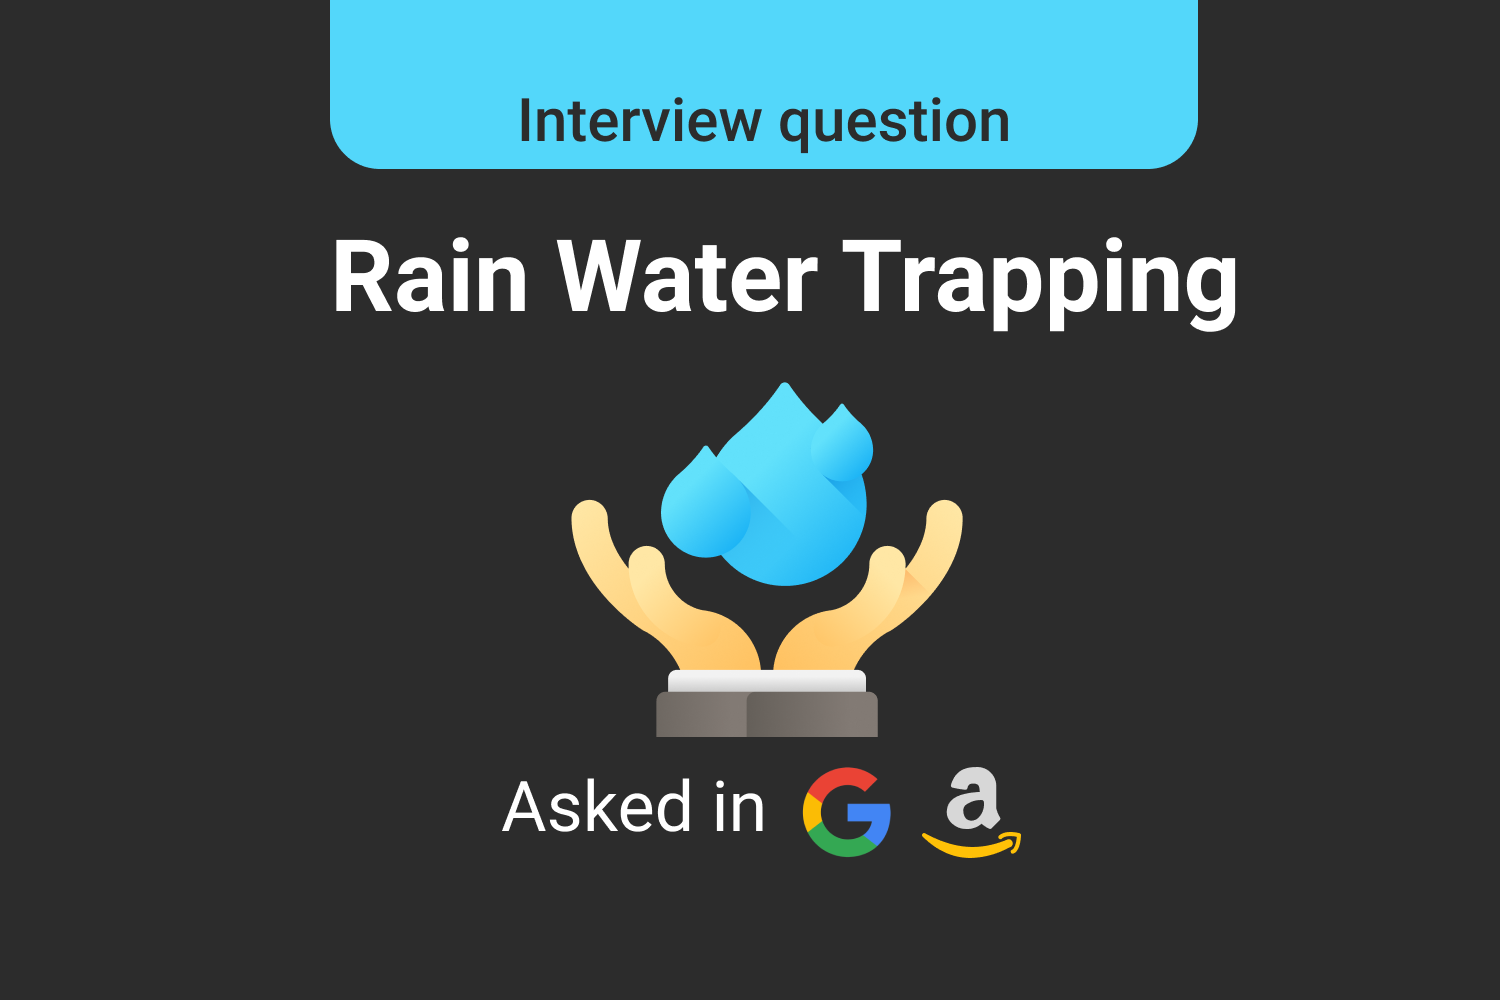 Rain Water Trapping